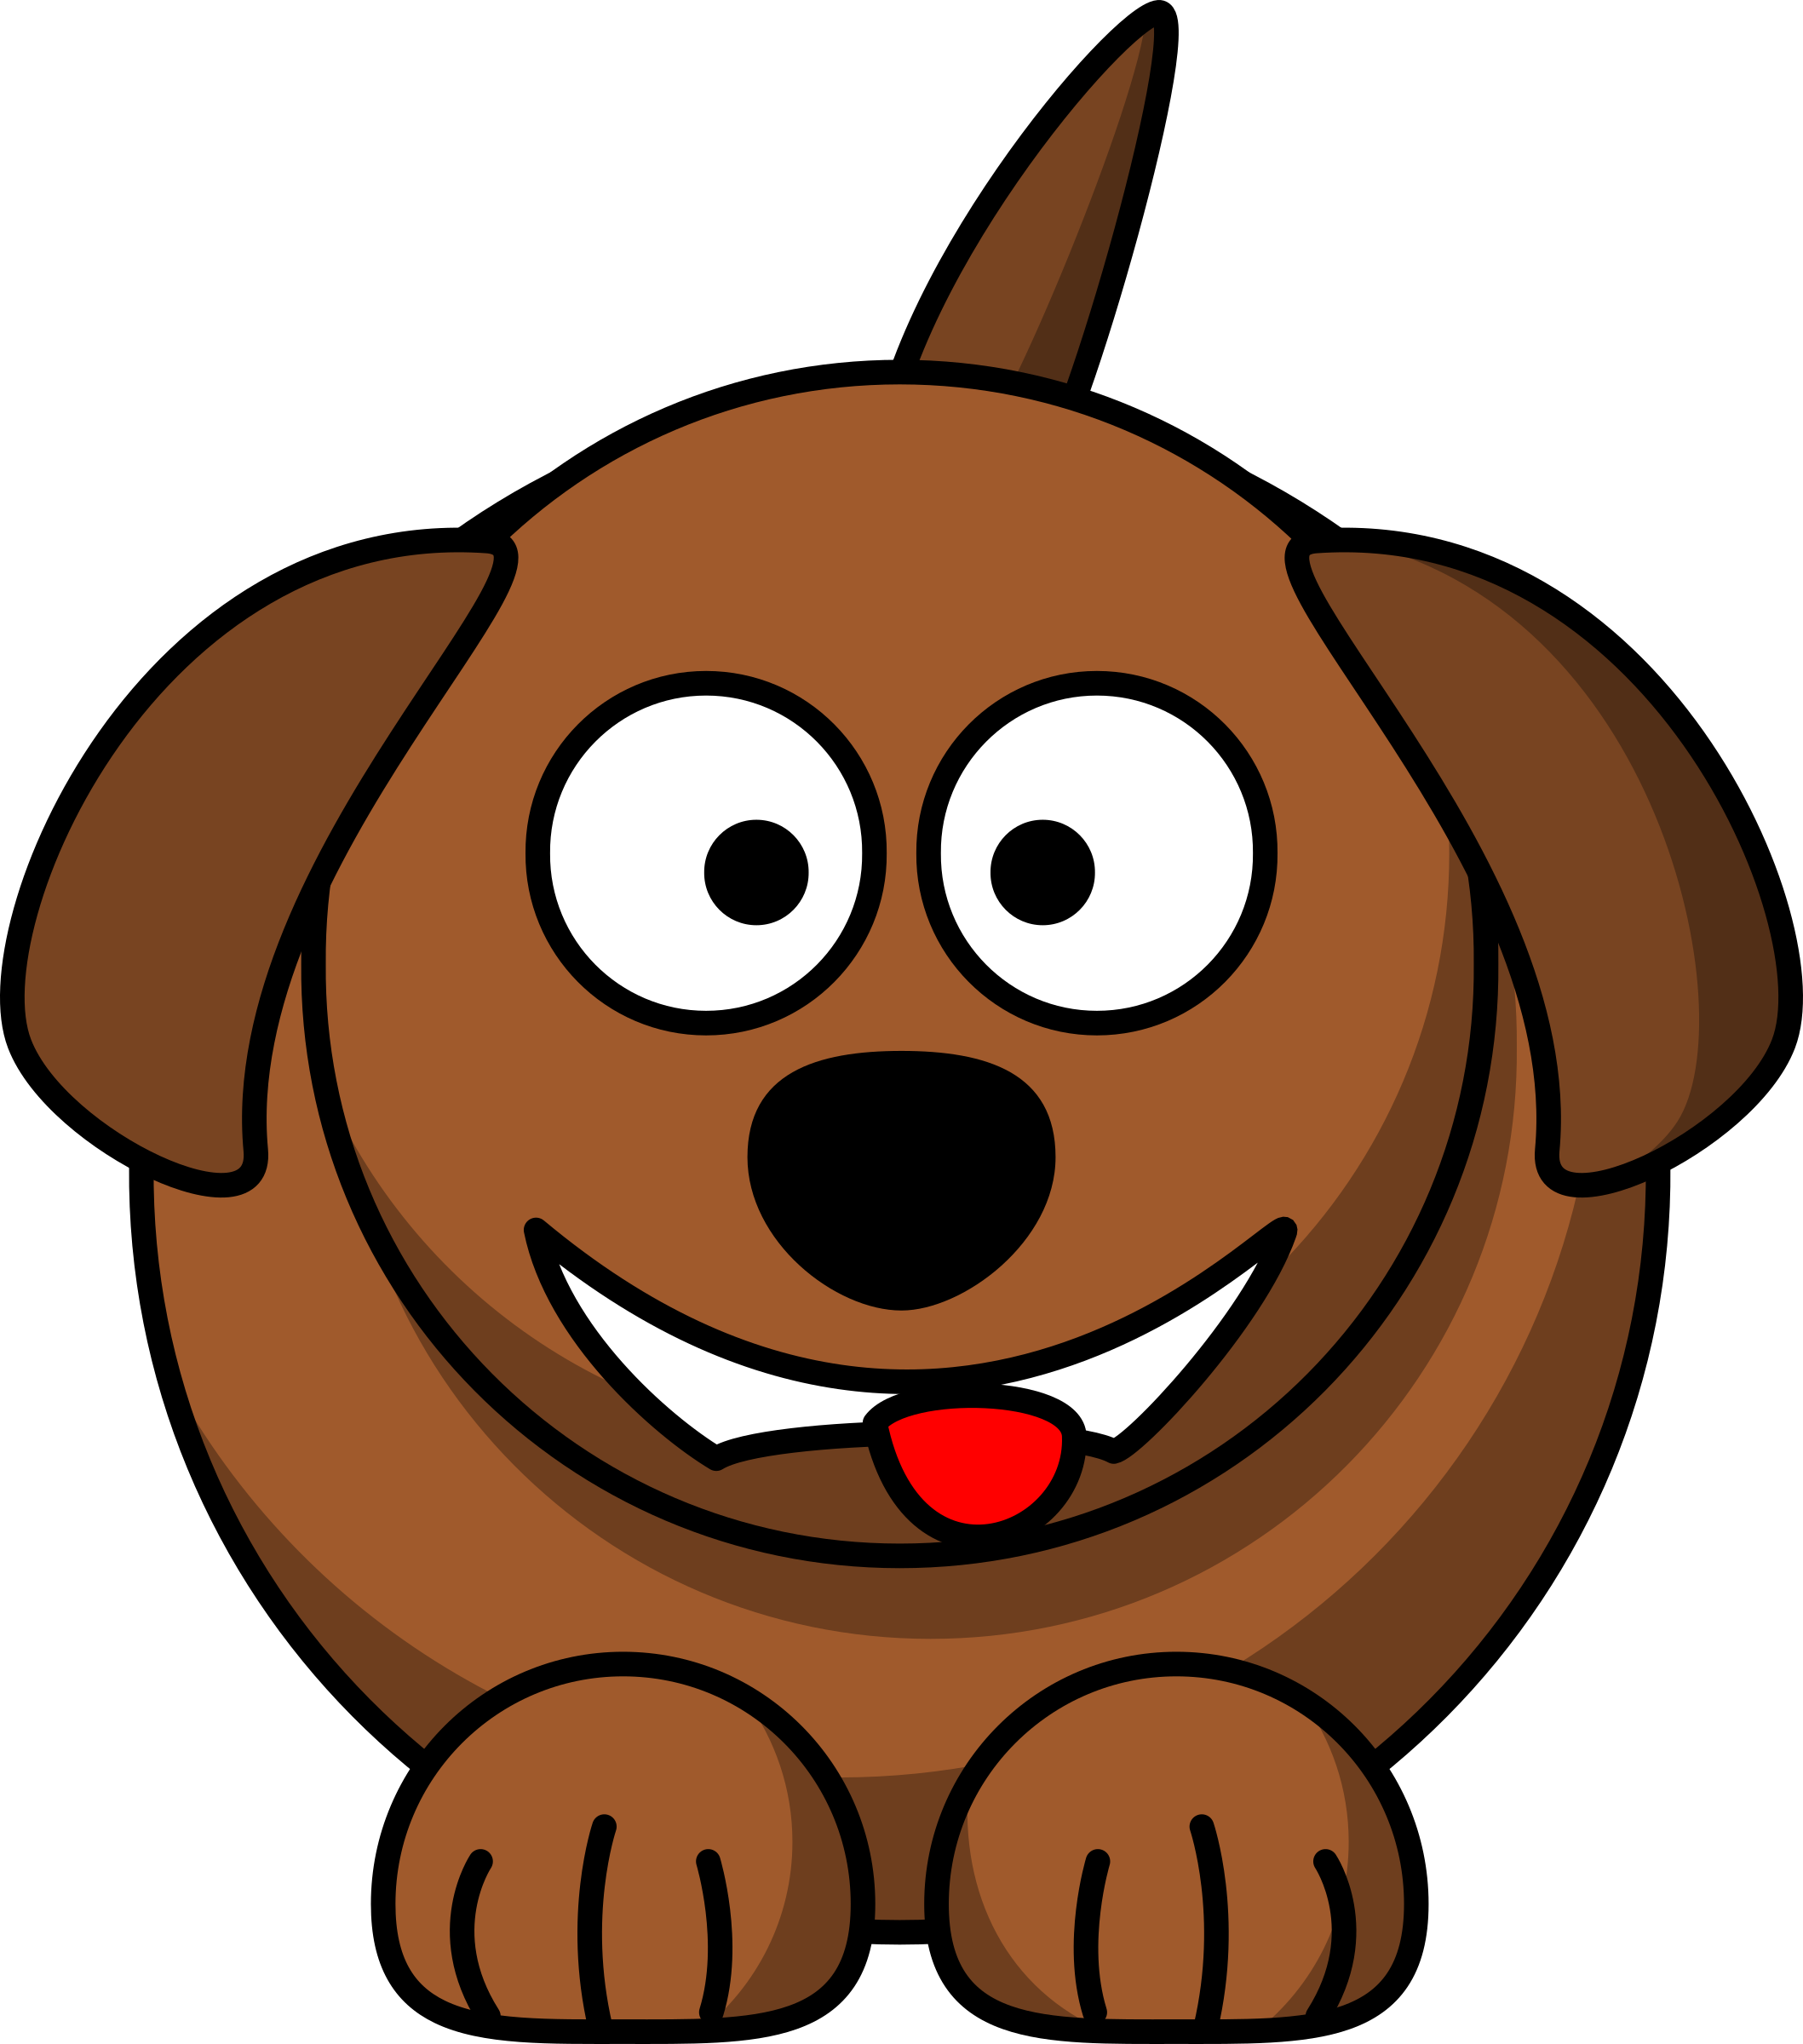 Cartoon dog laughing or smiling by Schplook